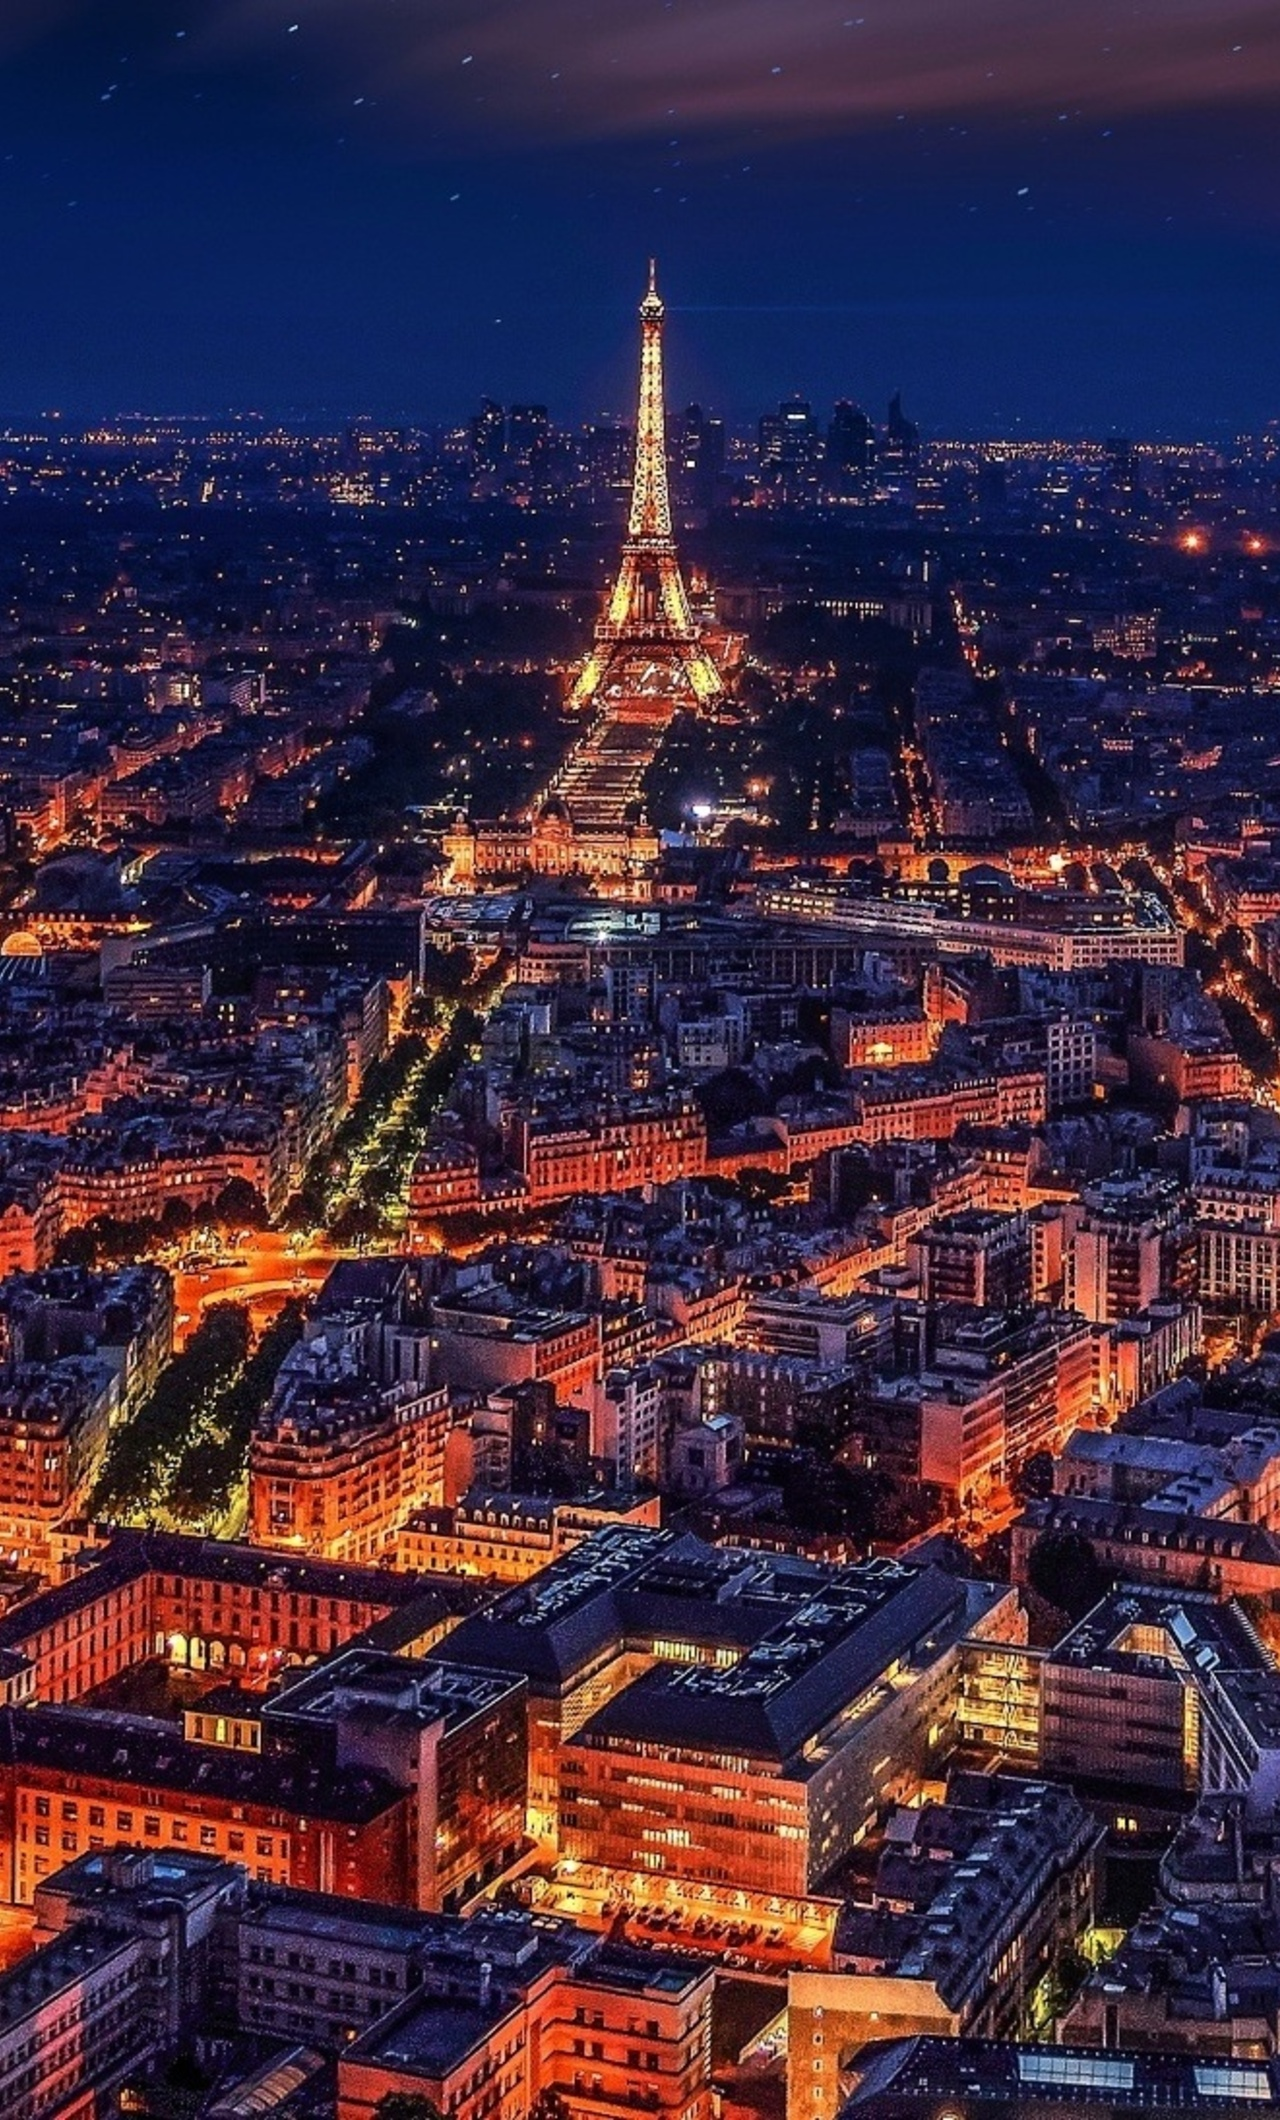 1280x2120 Paris France Eiffel Tower Night Iphone 6 Hd 4k Wallpapers Images Backgrounds Photos And Pictures